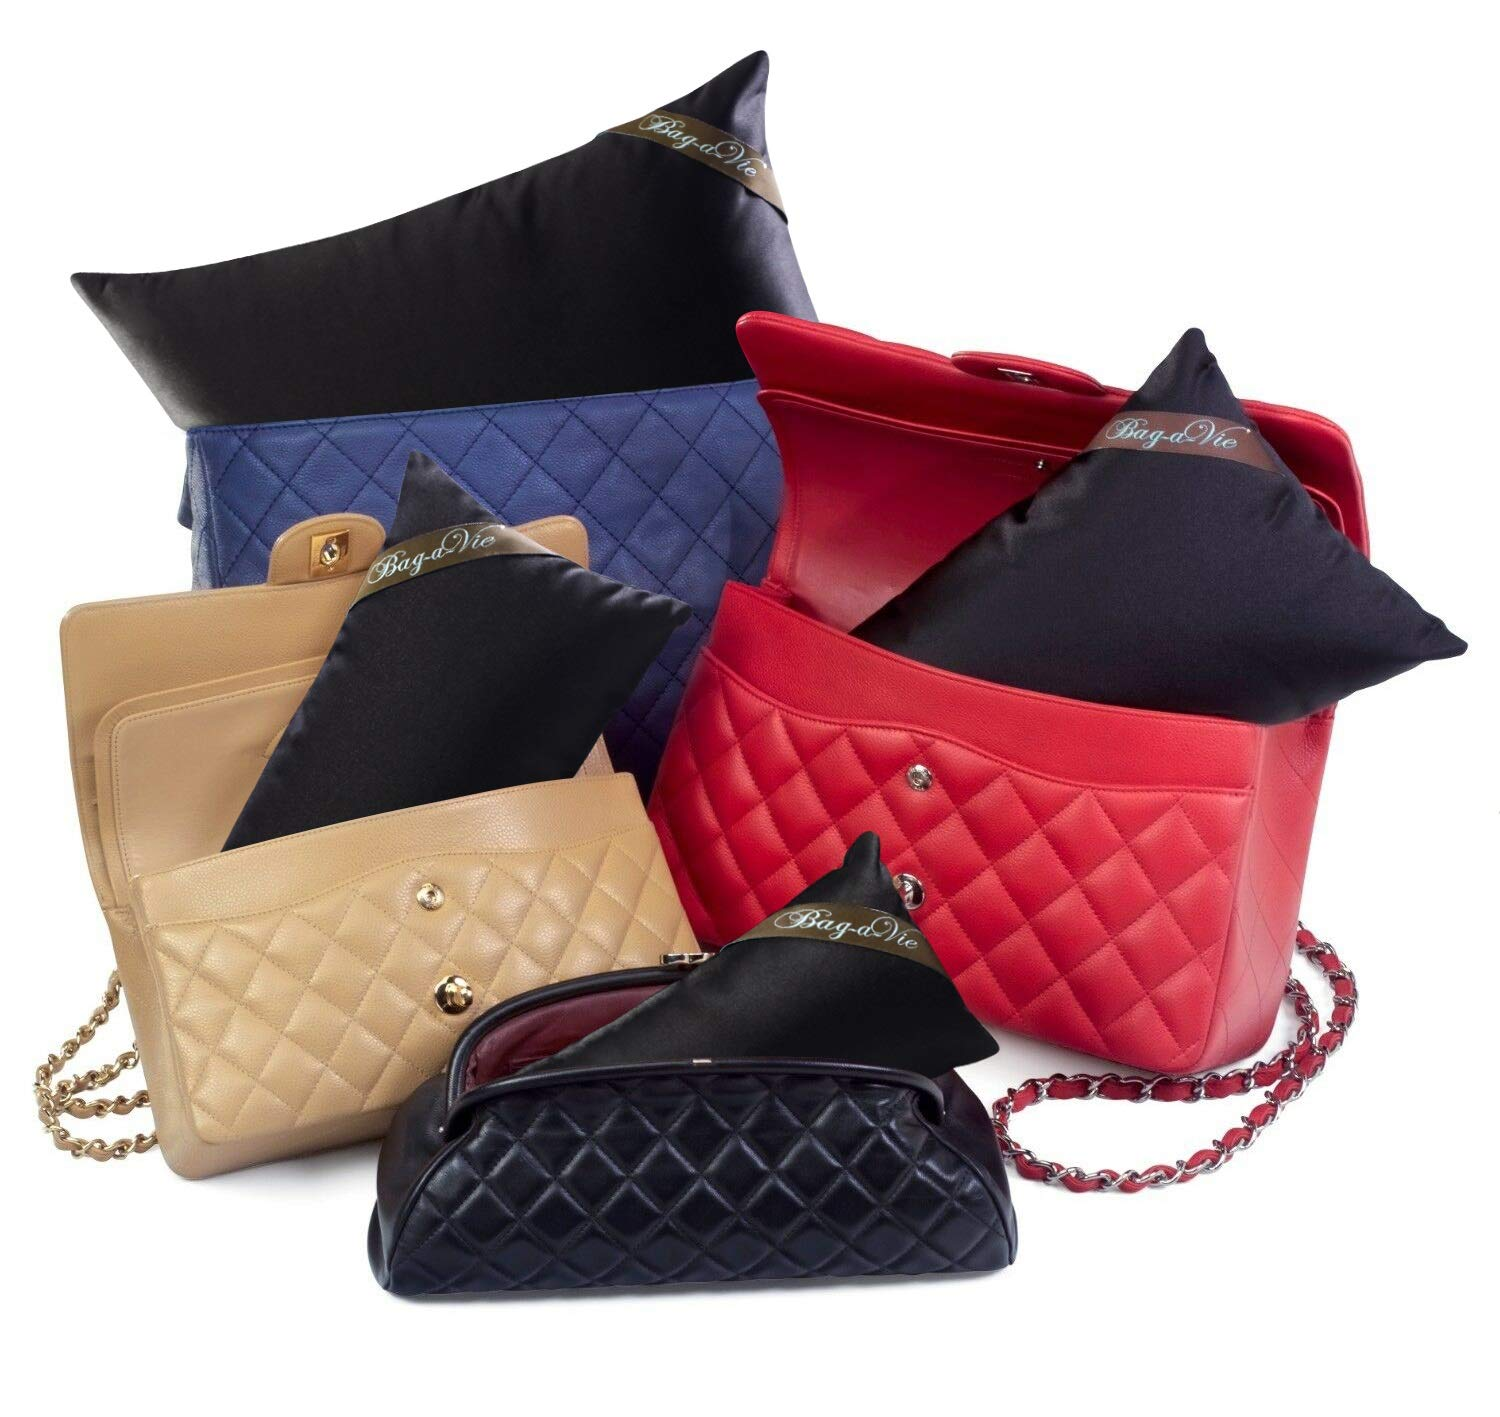 Bag-a-Vie Handbag Purse Shaper Pillows [4-Pack] Made to fit Chanel, Hermes & More by Bag-a-Vie